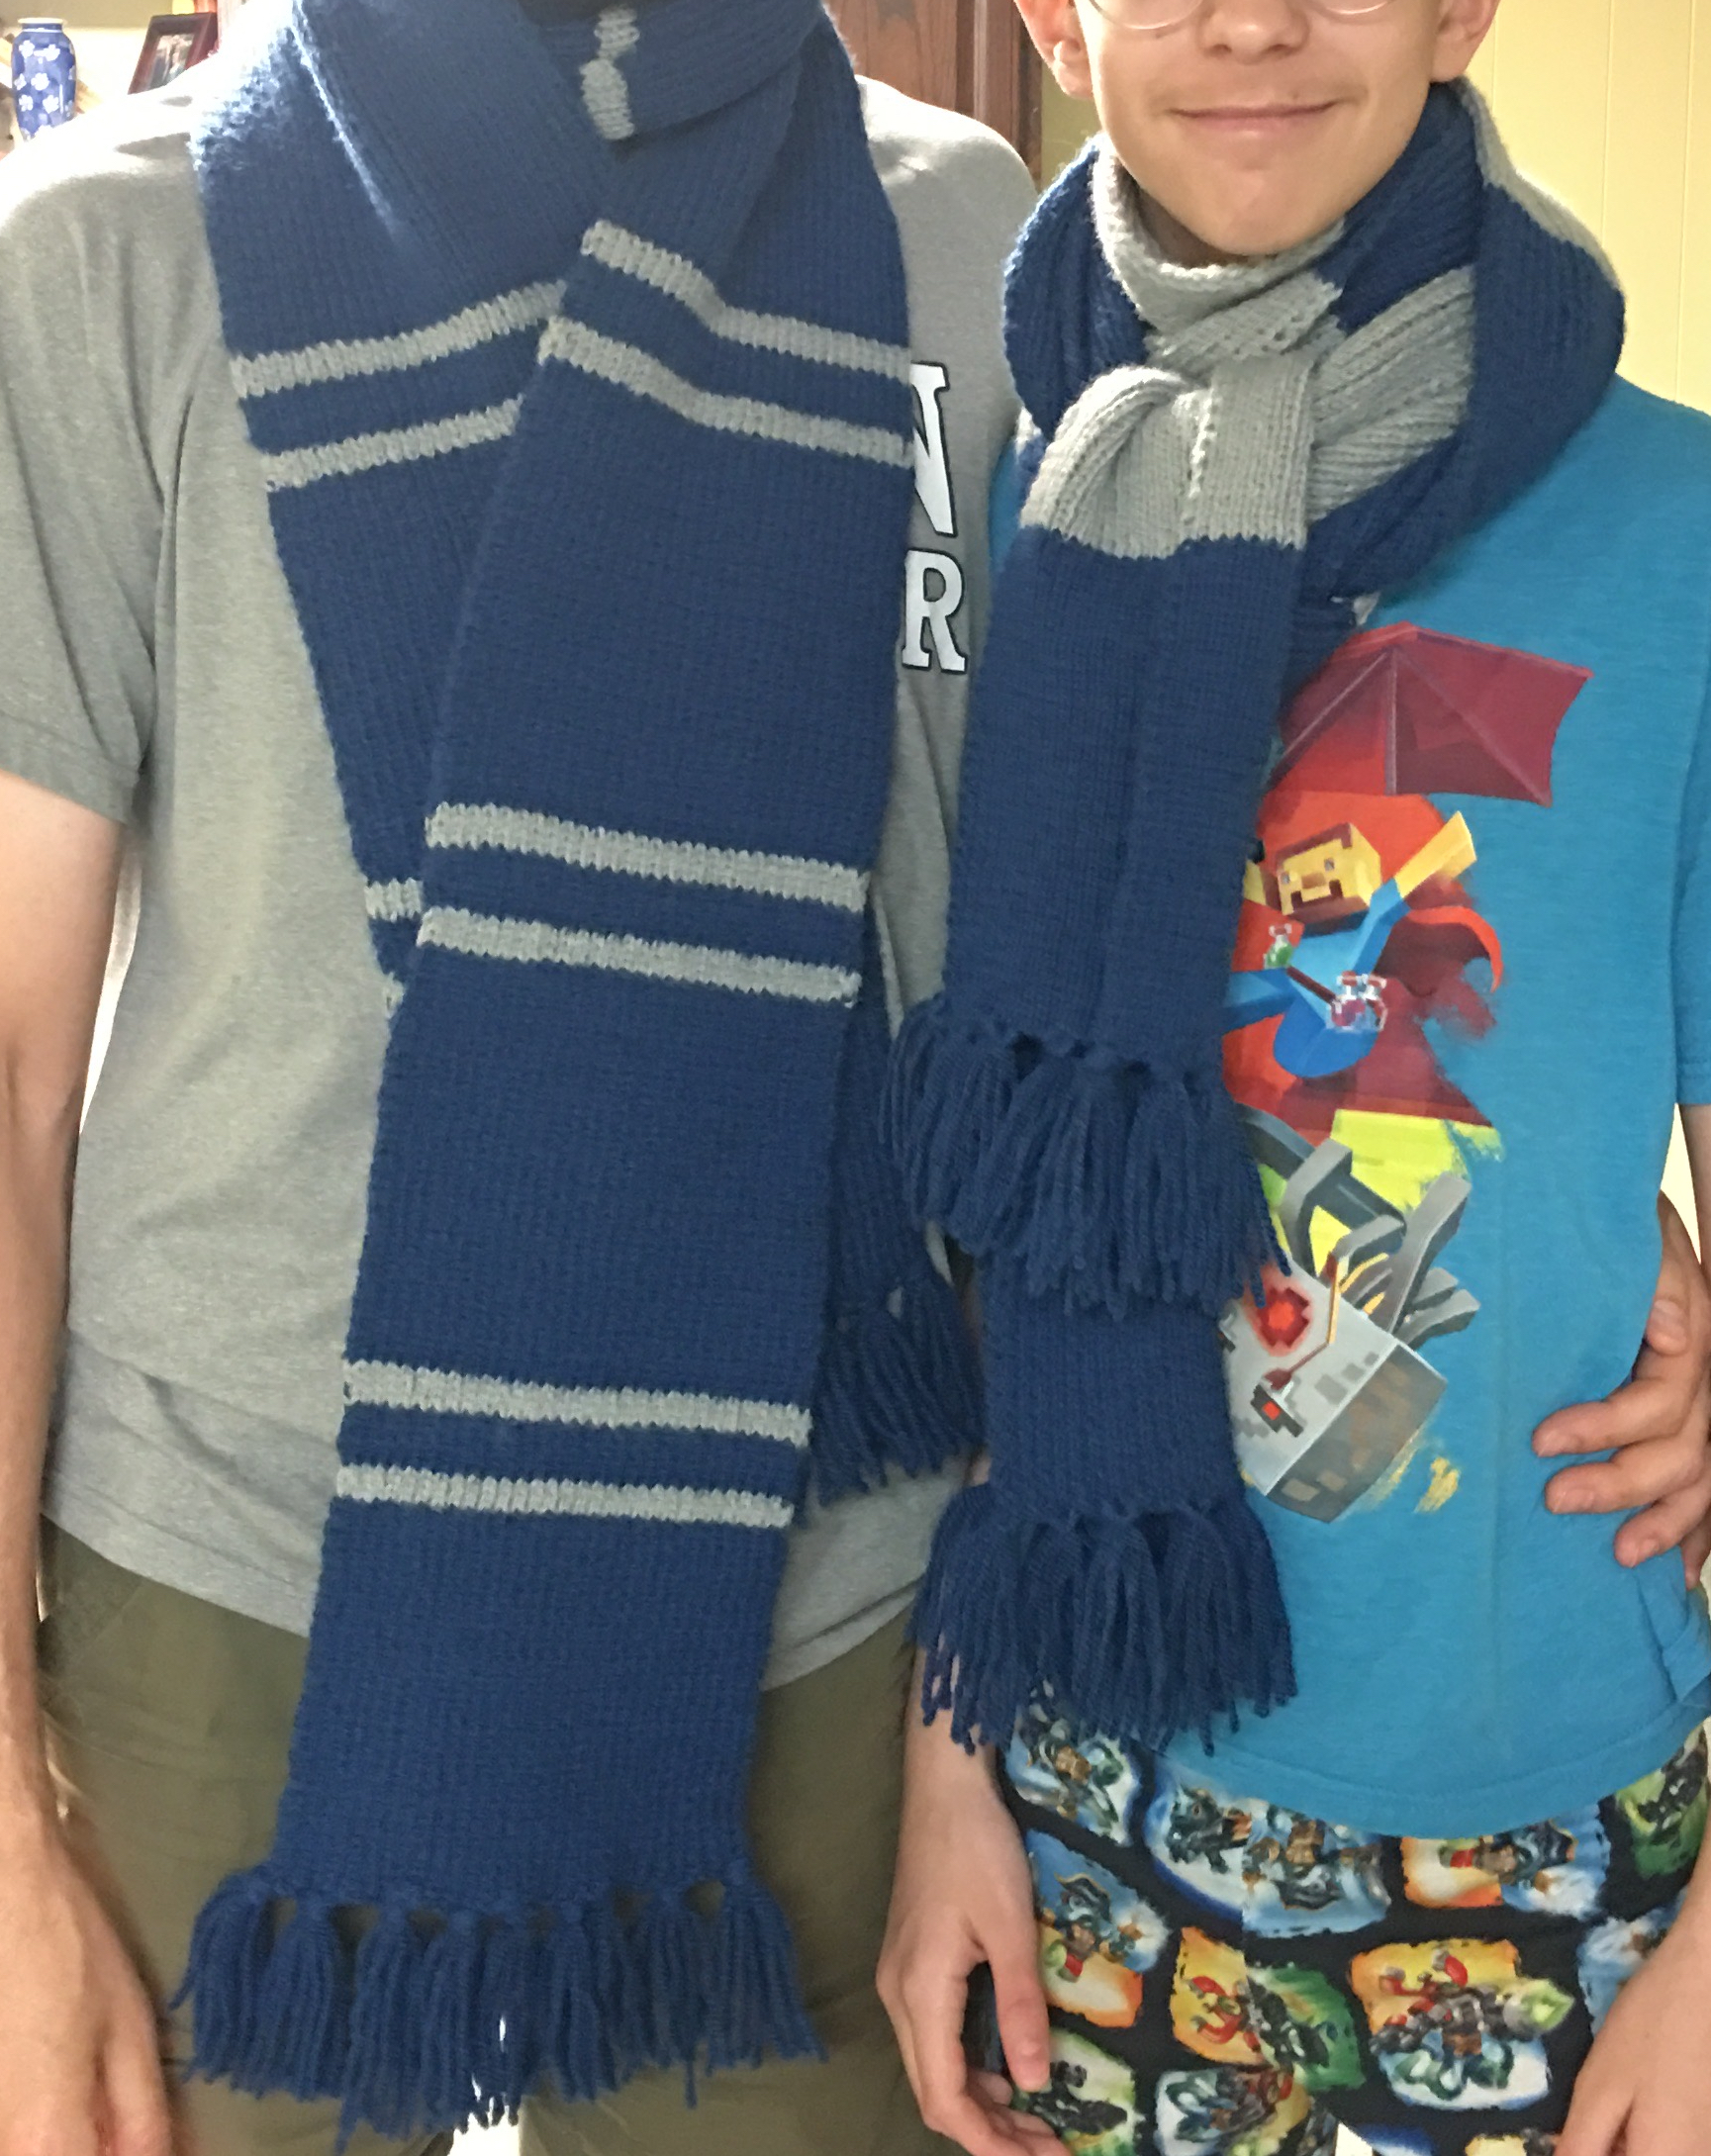 picture of two human torsos modeling two different scarves made in the style of the Harry Potter movies